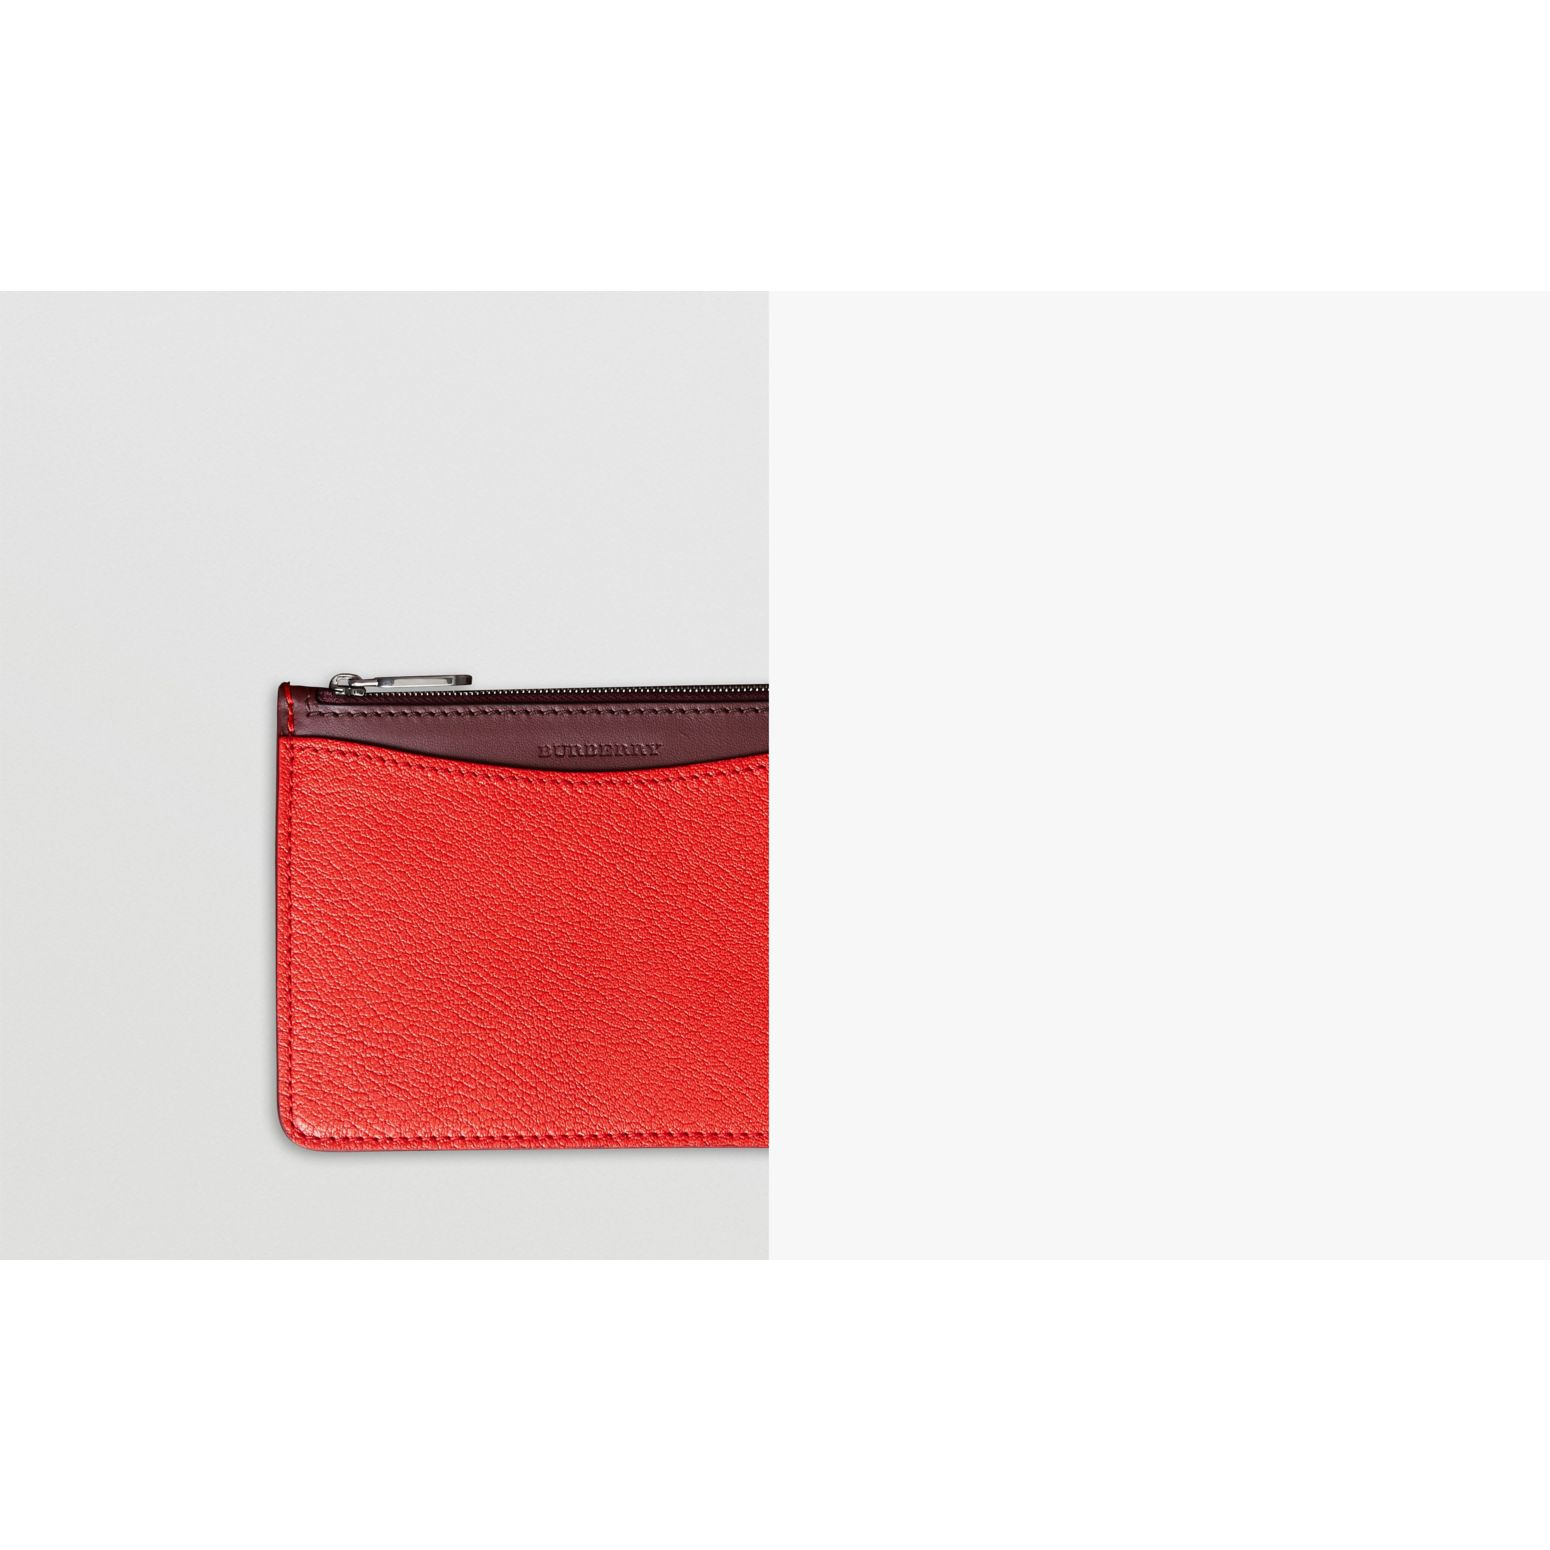 D-ring Leather Pouch with Zip Coin Case in Bright Red - Women | Burberry United States - gallery image 1